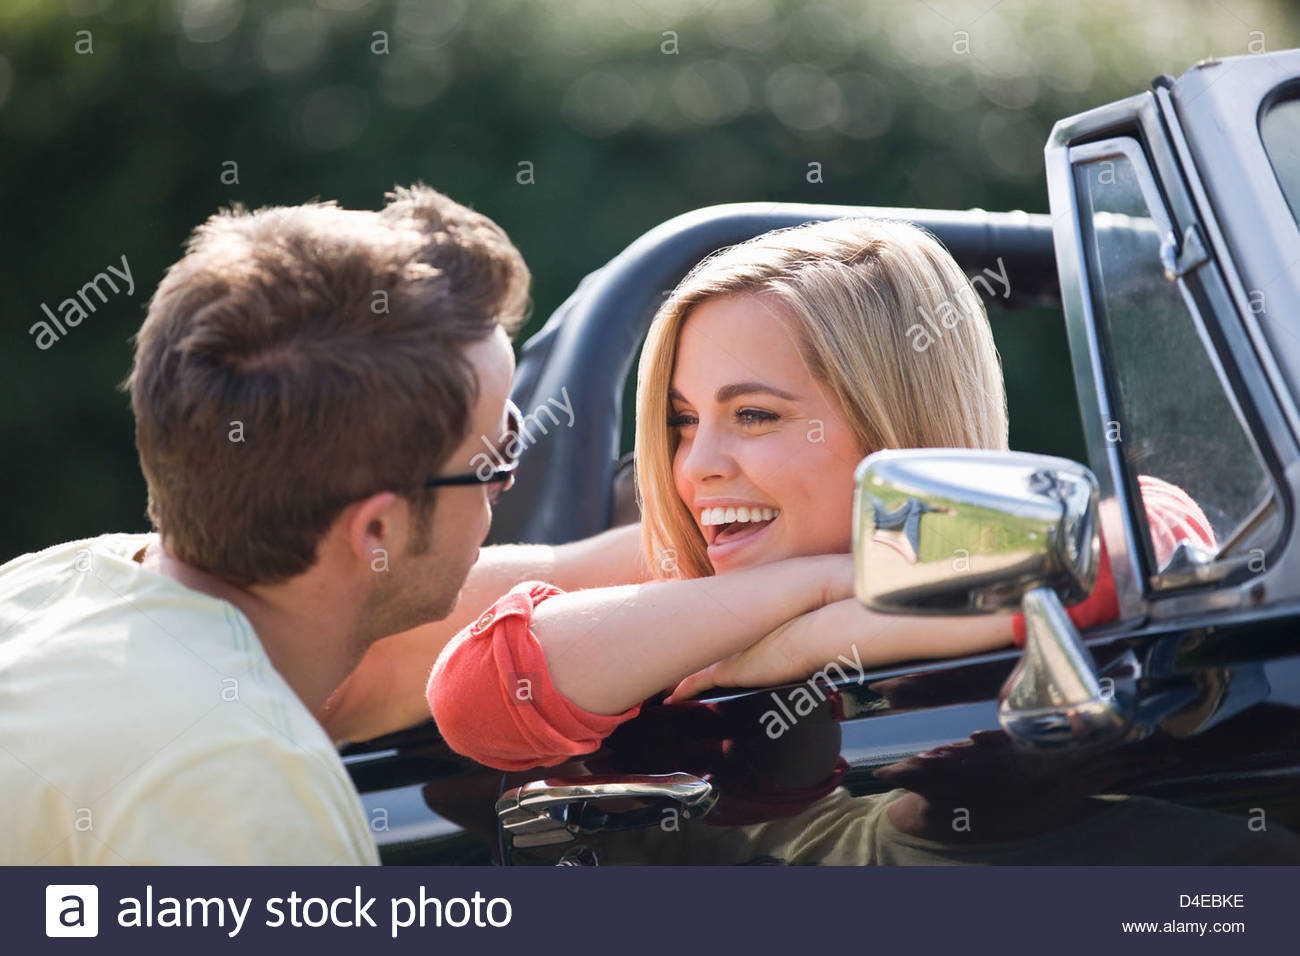 A young man speaking to a young woman in a black sports car - Stock Image